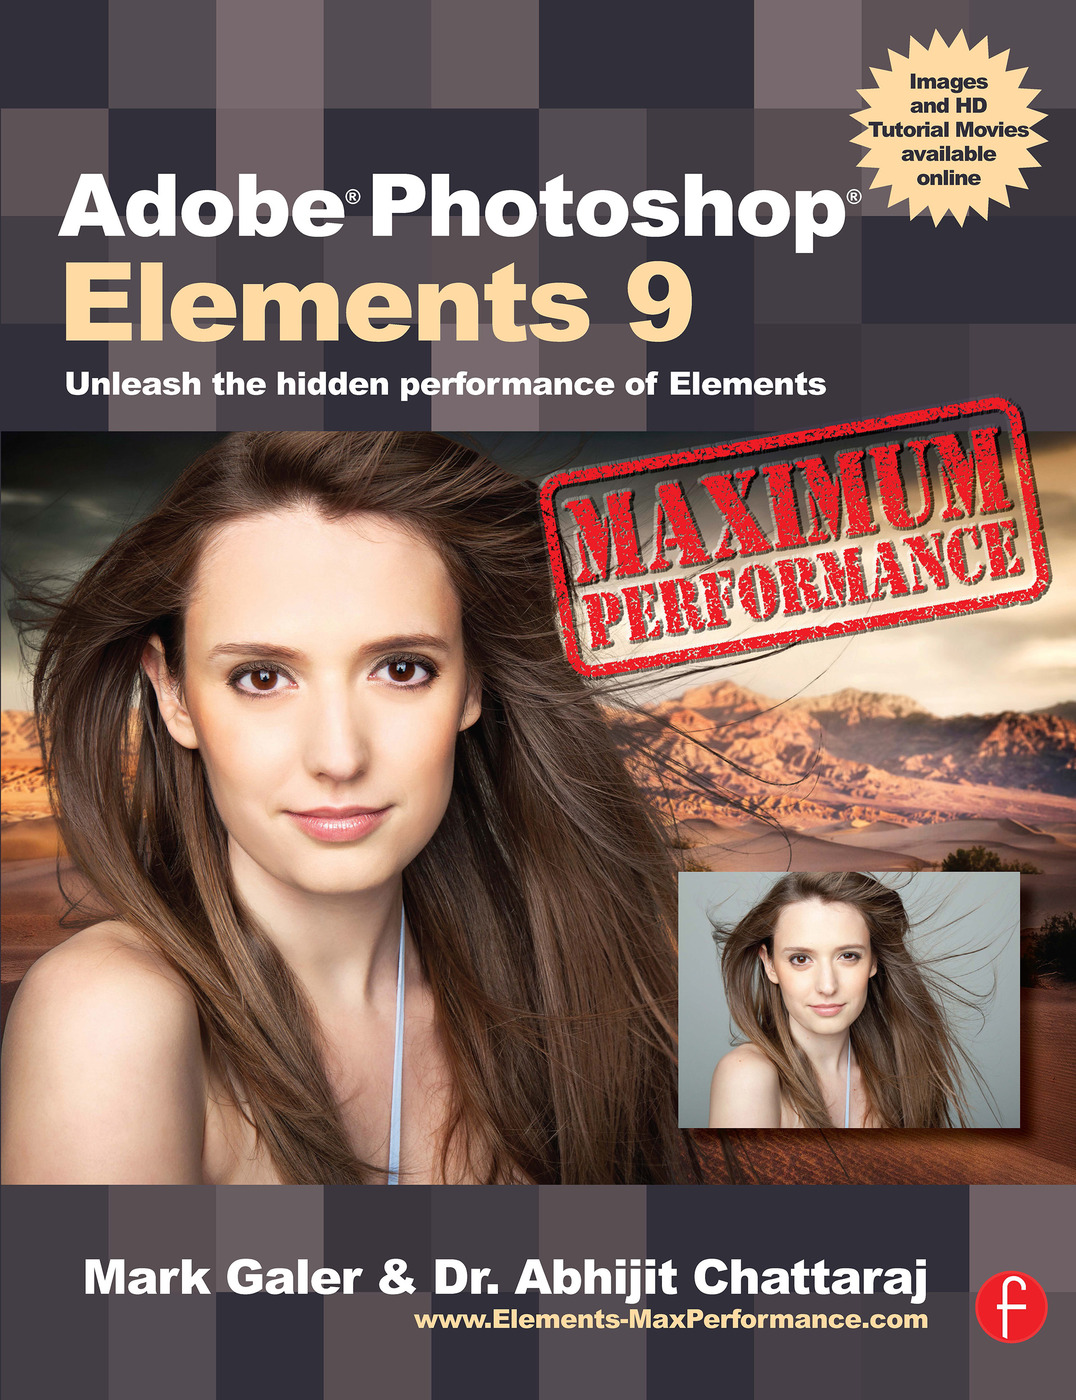 Adobe Photoshop Elements 9: Maximum Performance: Unleash the hidden performance of Elements book cover